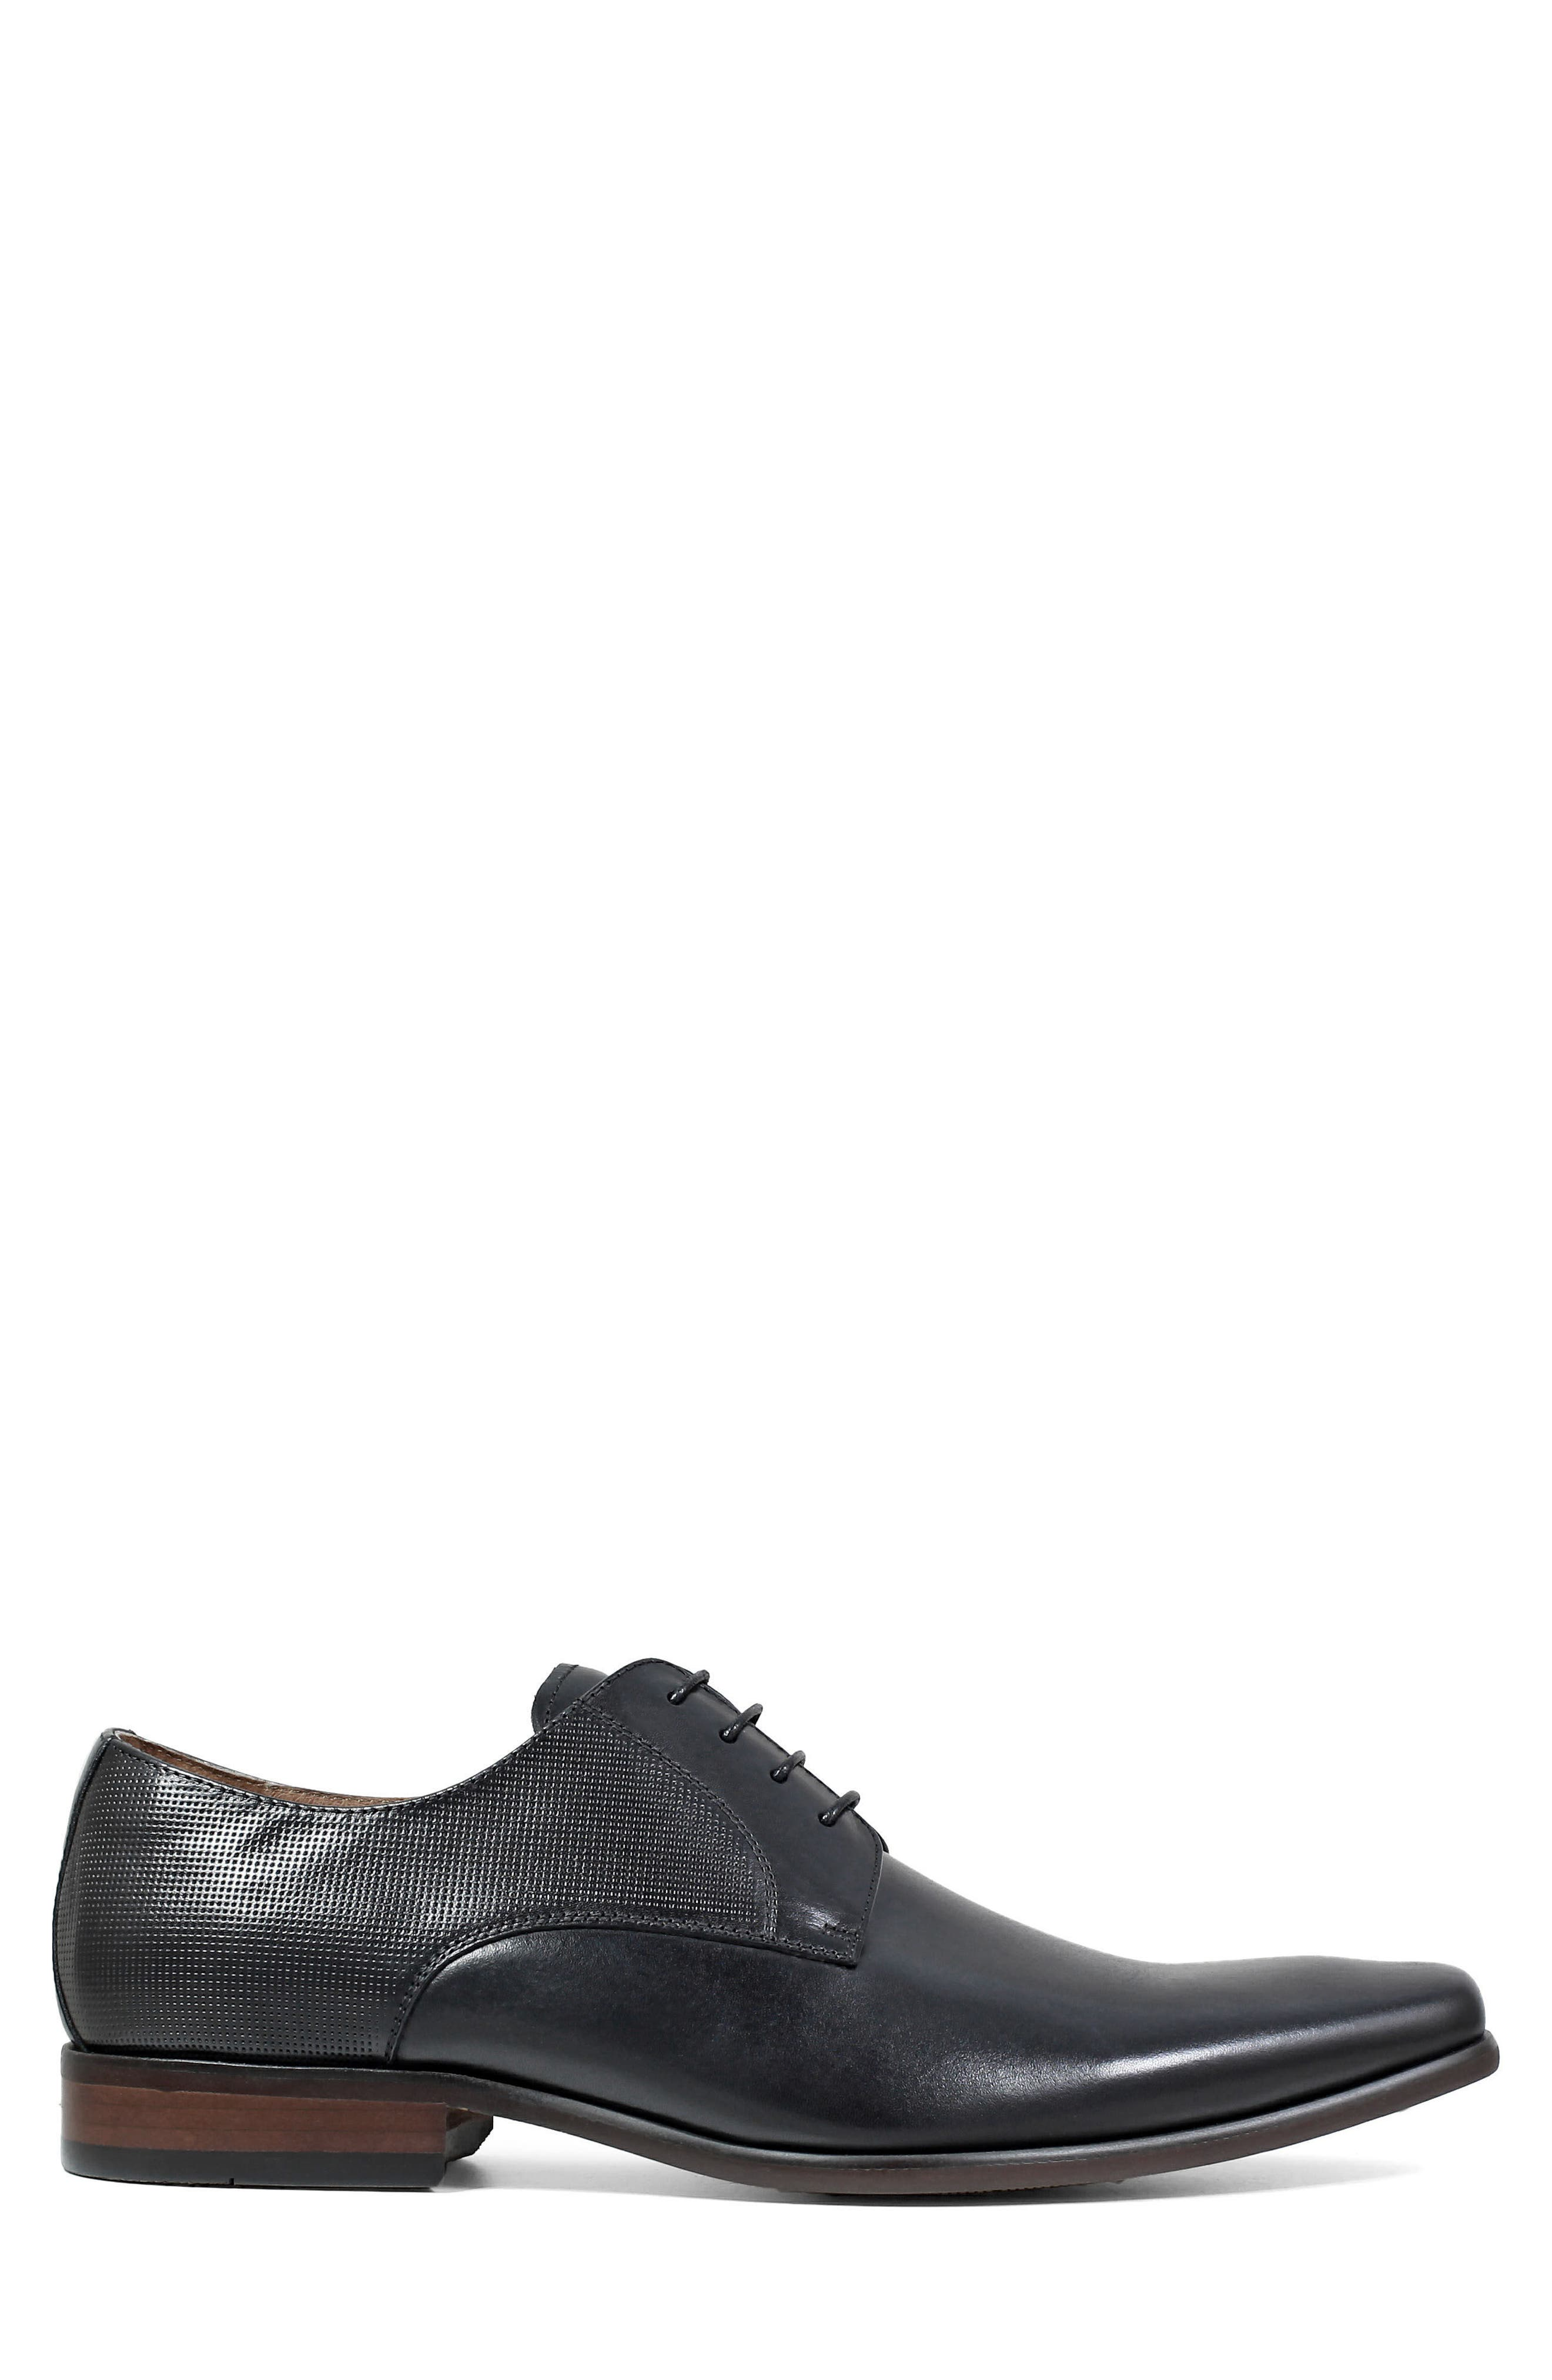 Postino Textured Plain Toe Derby,                             Alternate thumbnail 3, color,                             BLACK LEATHER